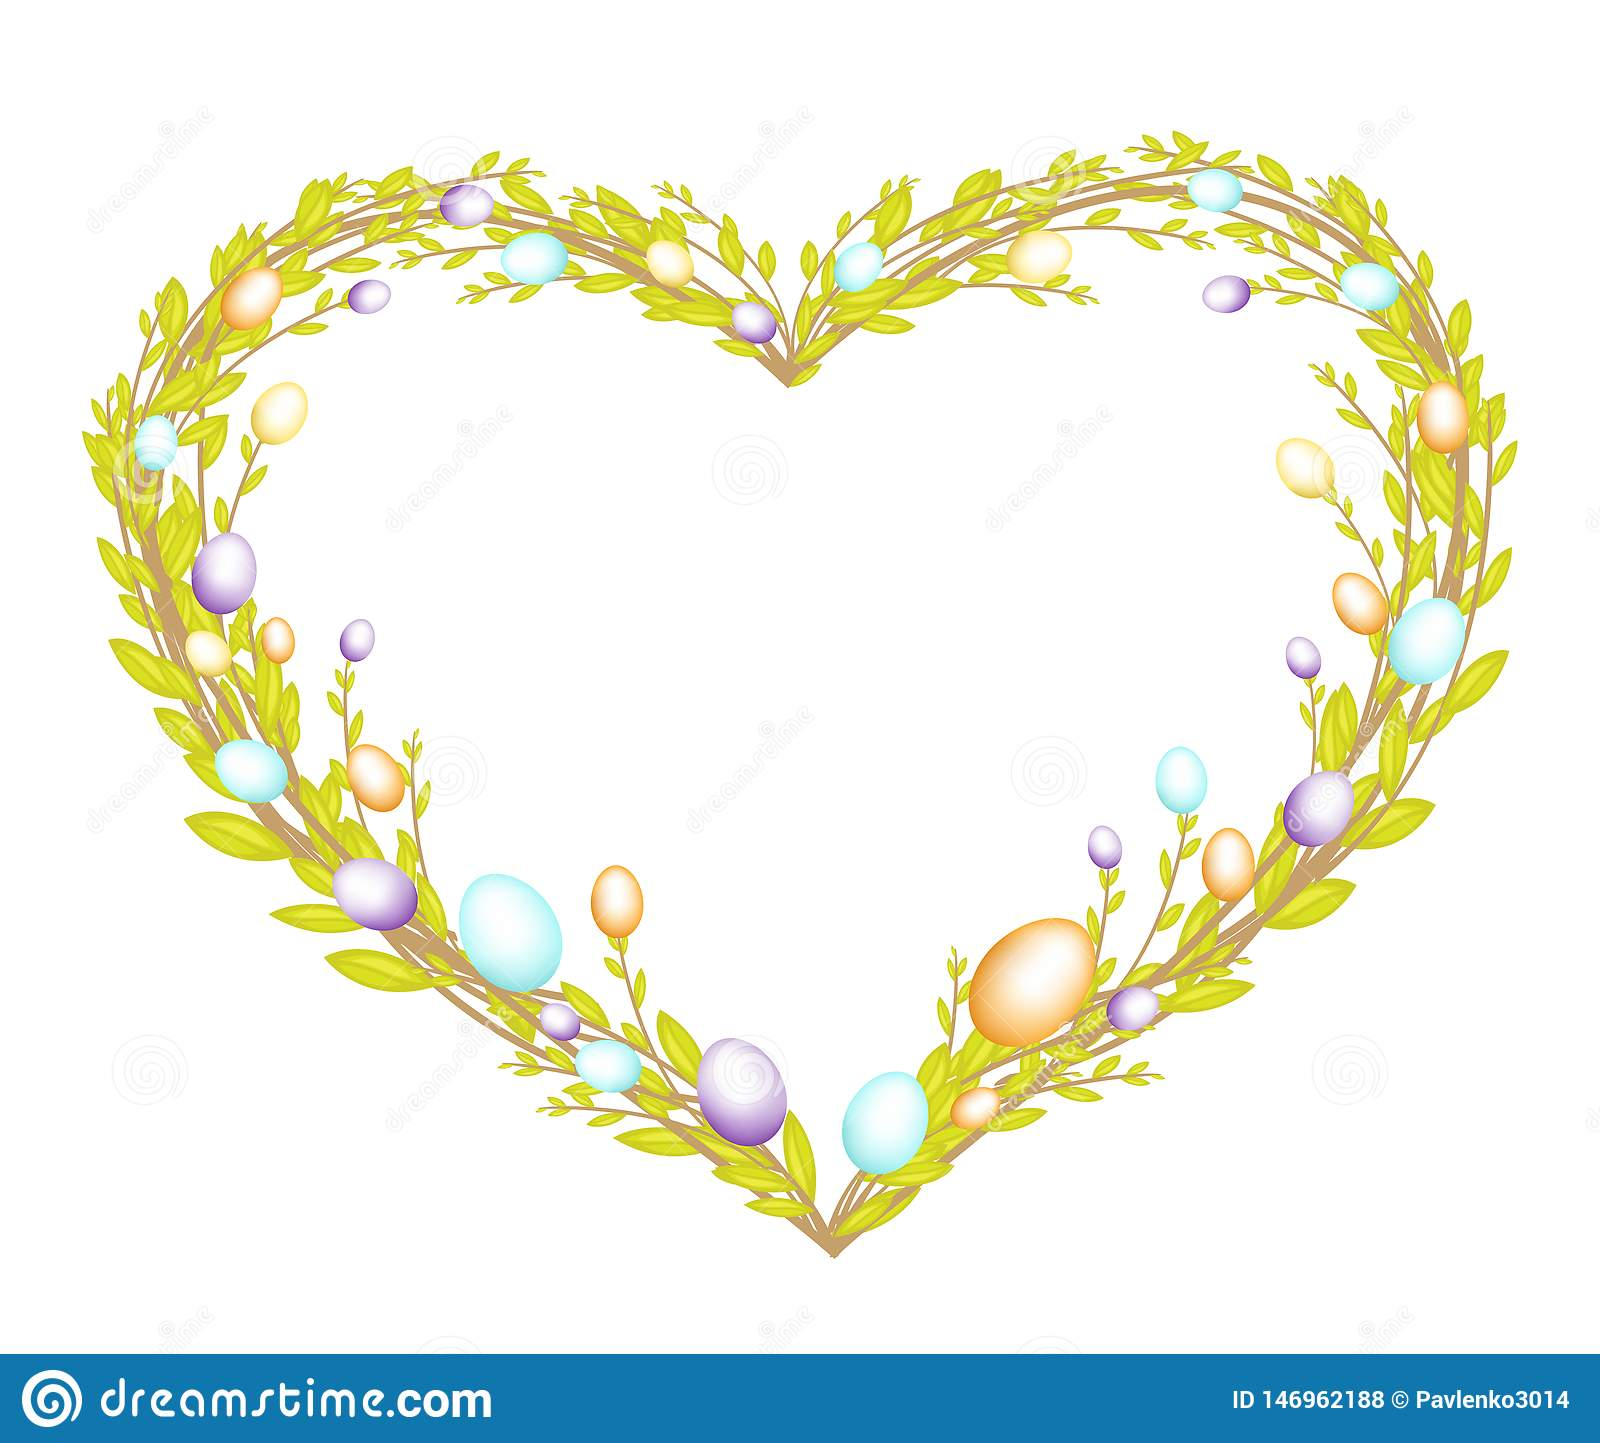 Heart shaped wreath made from young willow branches. Decorated with Easter painted eggs. The symbol of Easter. Vector illustration